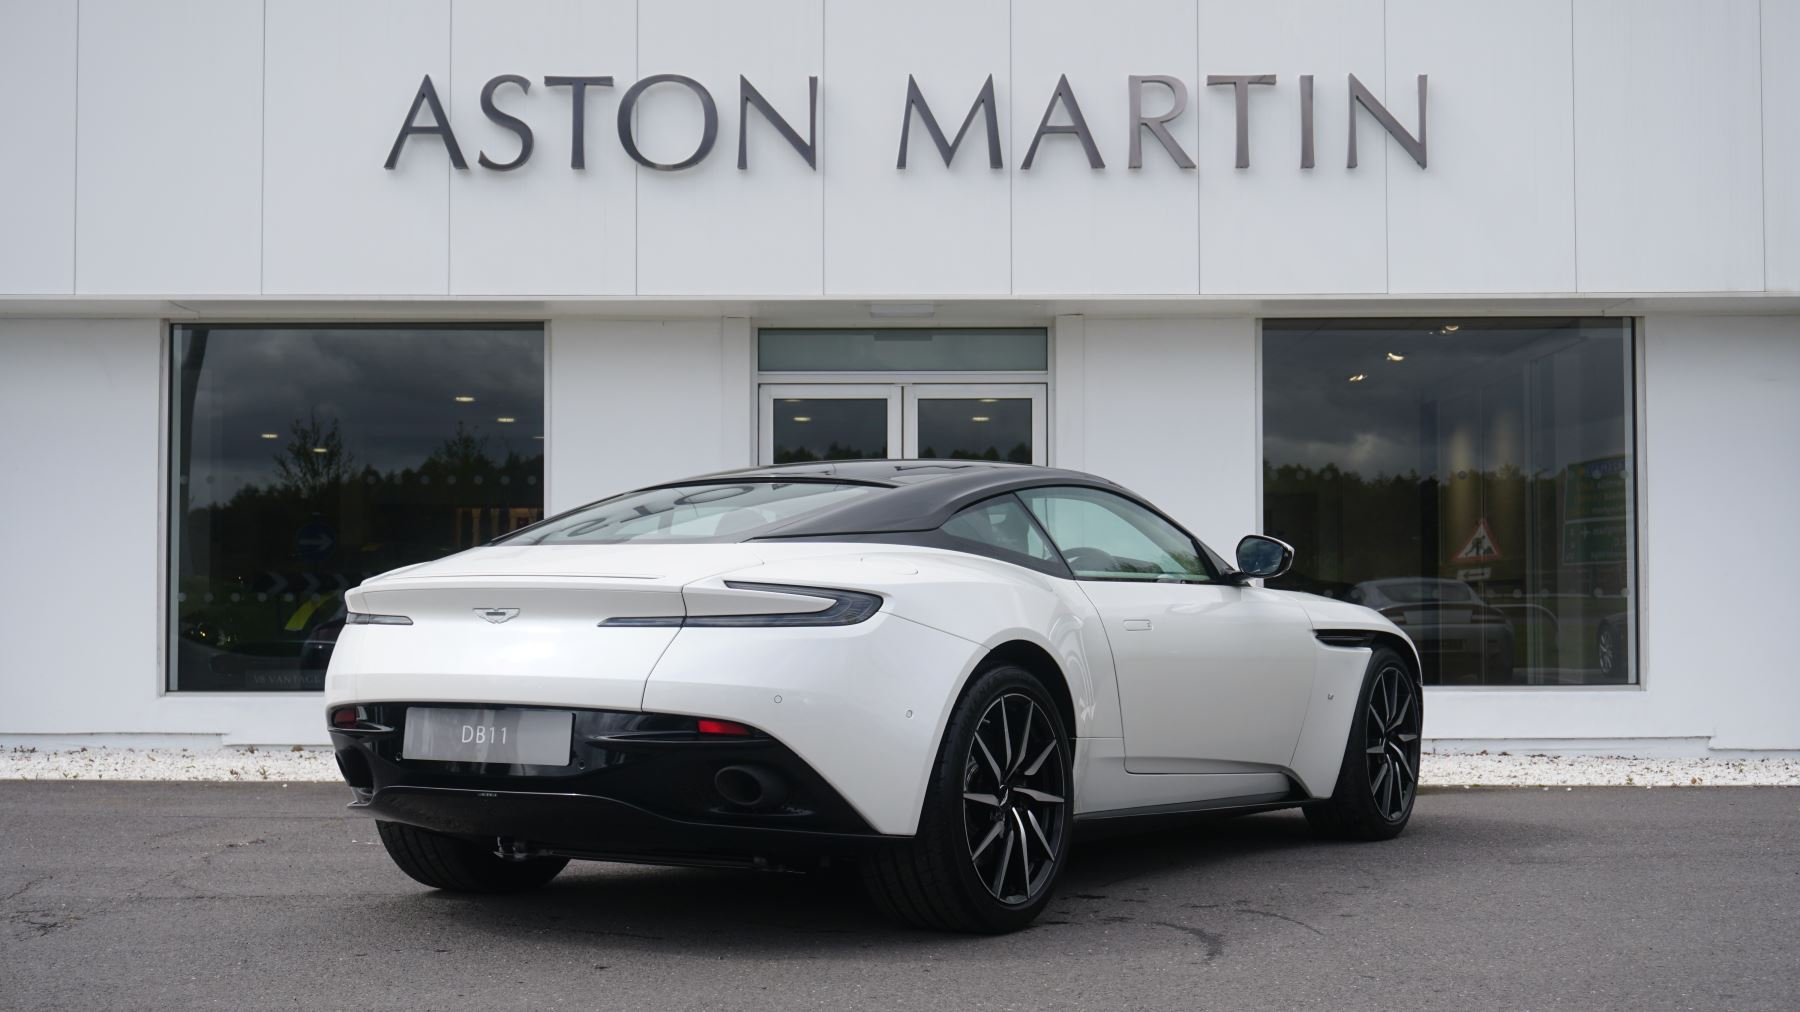 Low Price Car >> Aston Martin DB11 V12 2dr Touchtronic 5.2 Automatic Coupe (2018) at Aston Martin Birmingham